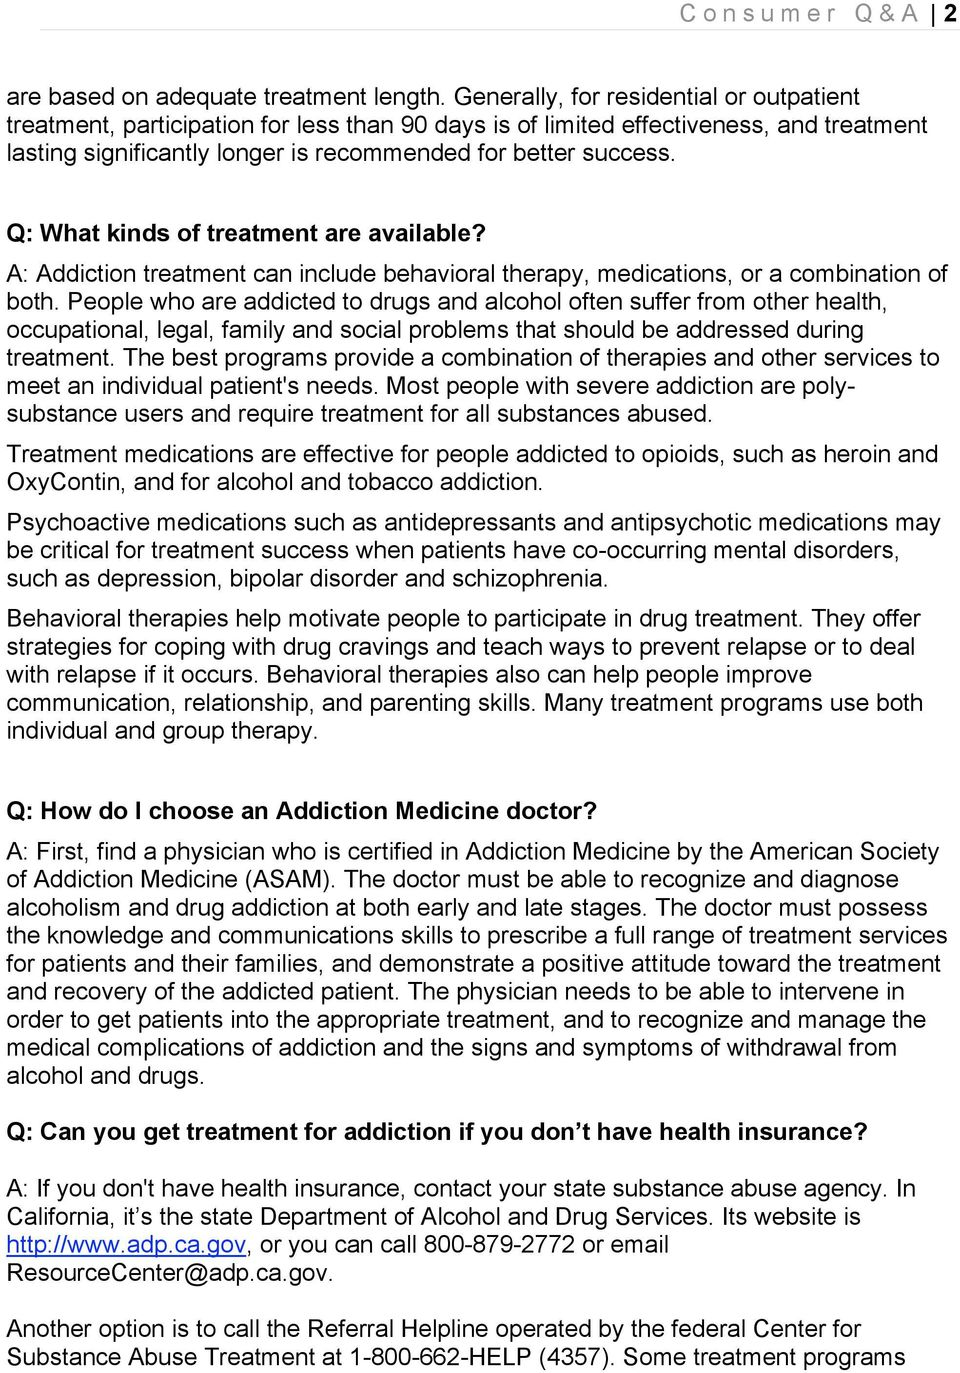 Q: What kinds of treatment are available? A: Addiction treatment can include behavioral therapy, medications, or a combination of both.